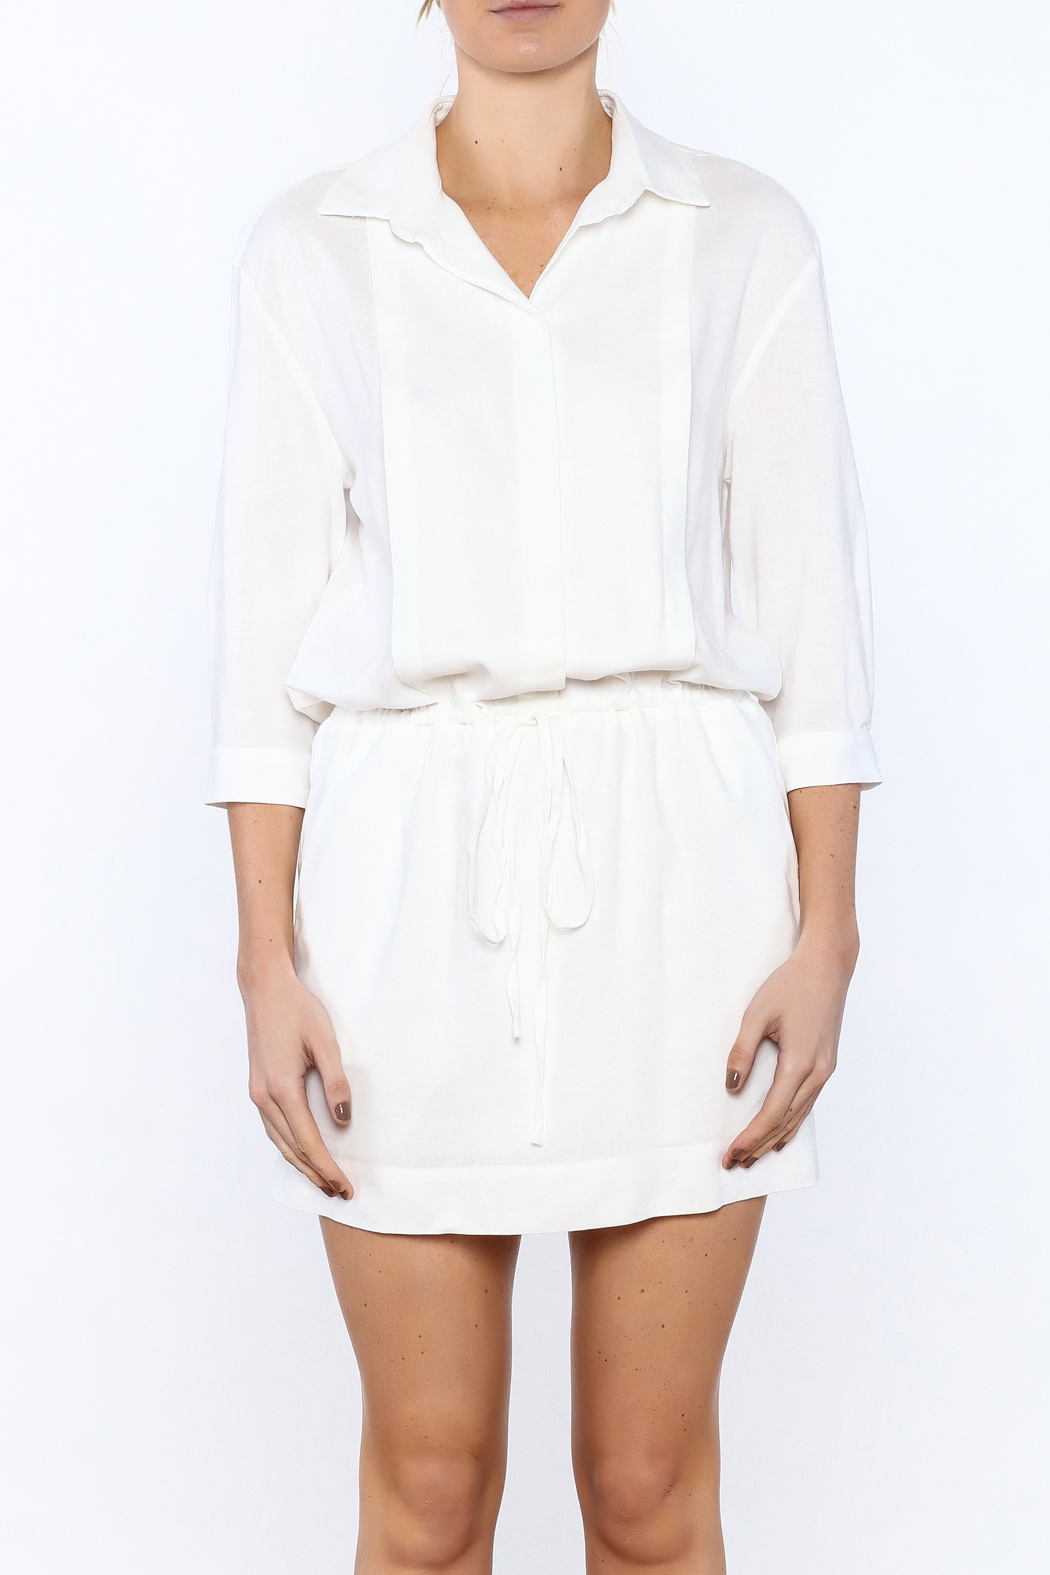 Zoa White Sheath Dress - Side Cropped Image